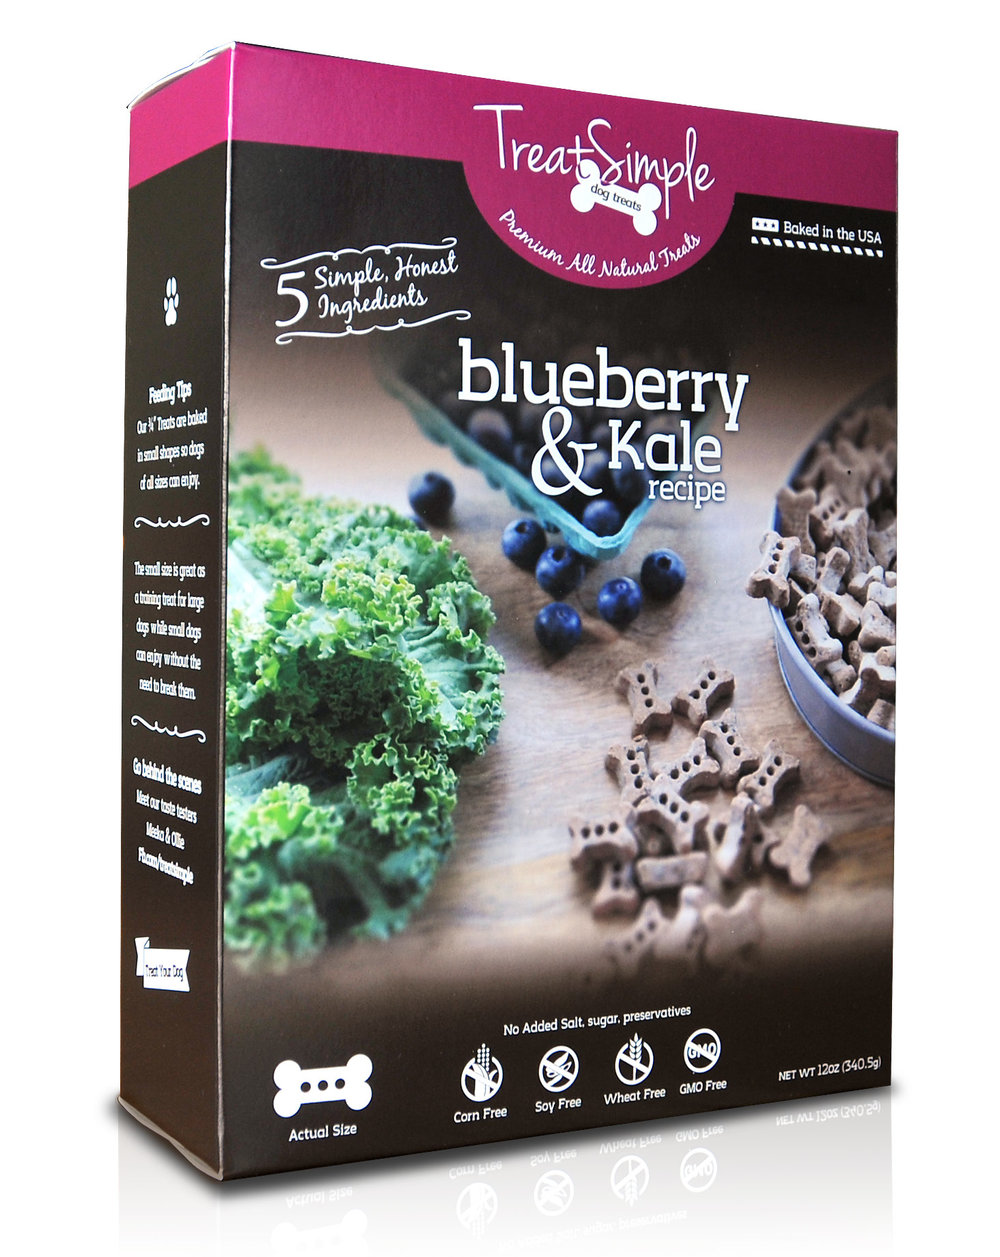 blueberry_box_lg.jpg